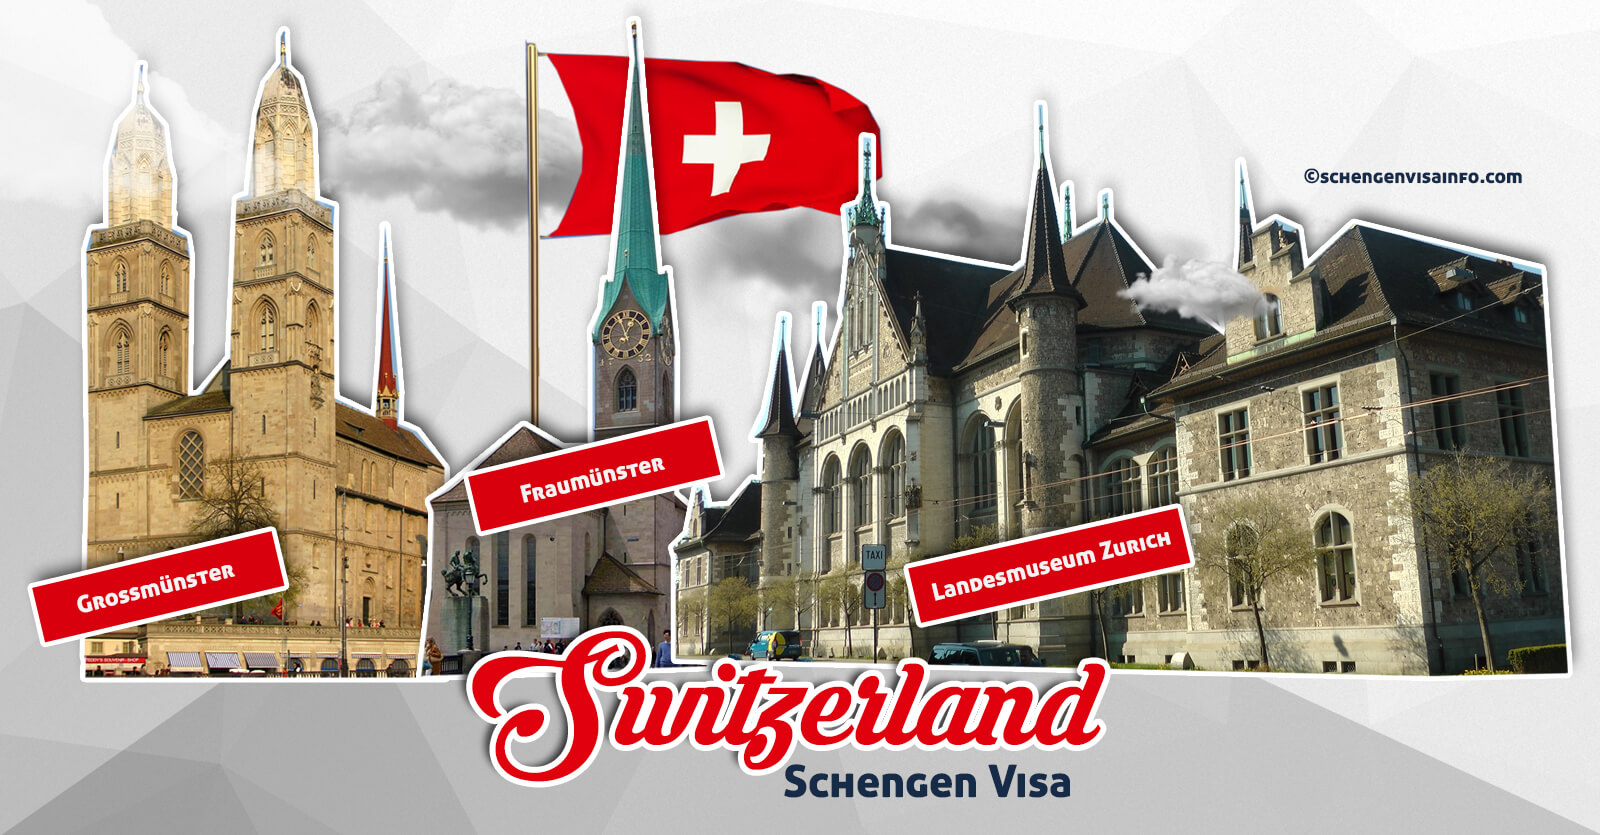 invitation letter for visapplication business sample%0A Switzerland Visa Application Requirements